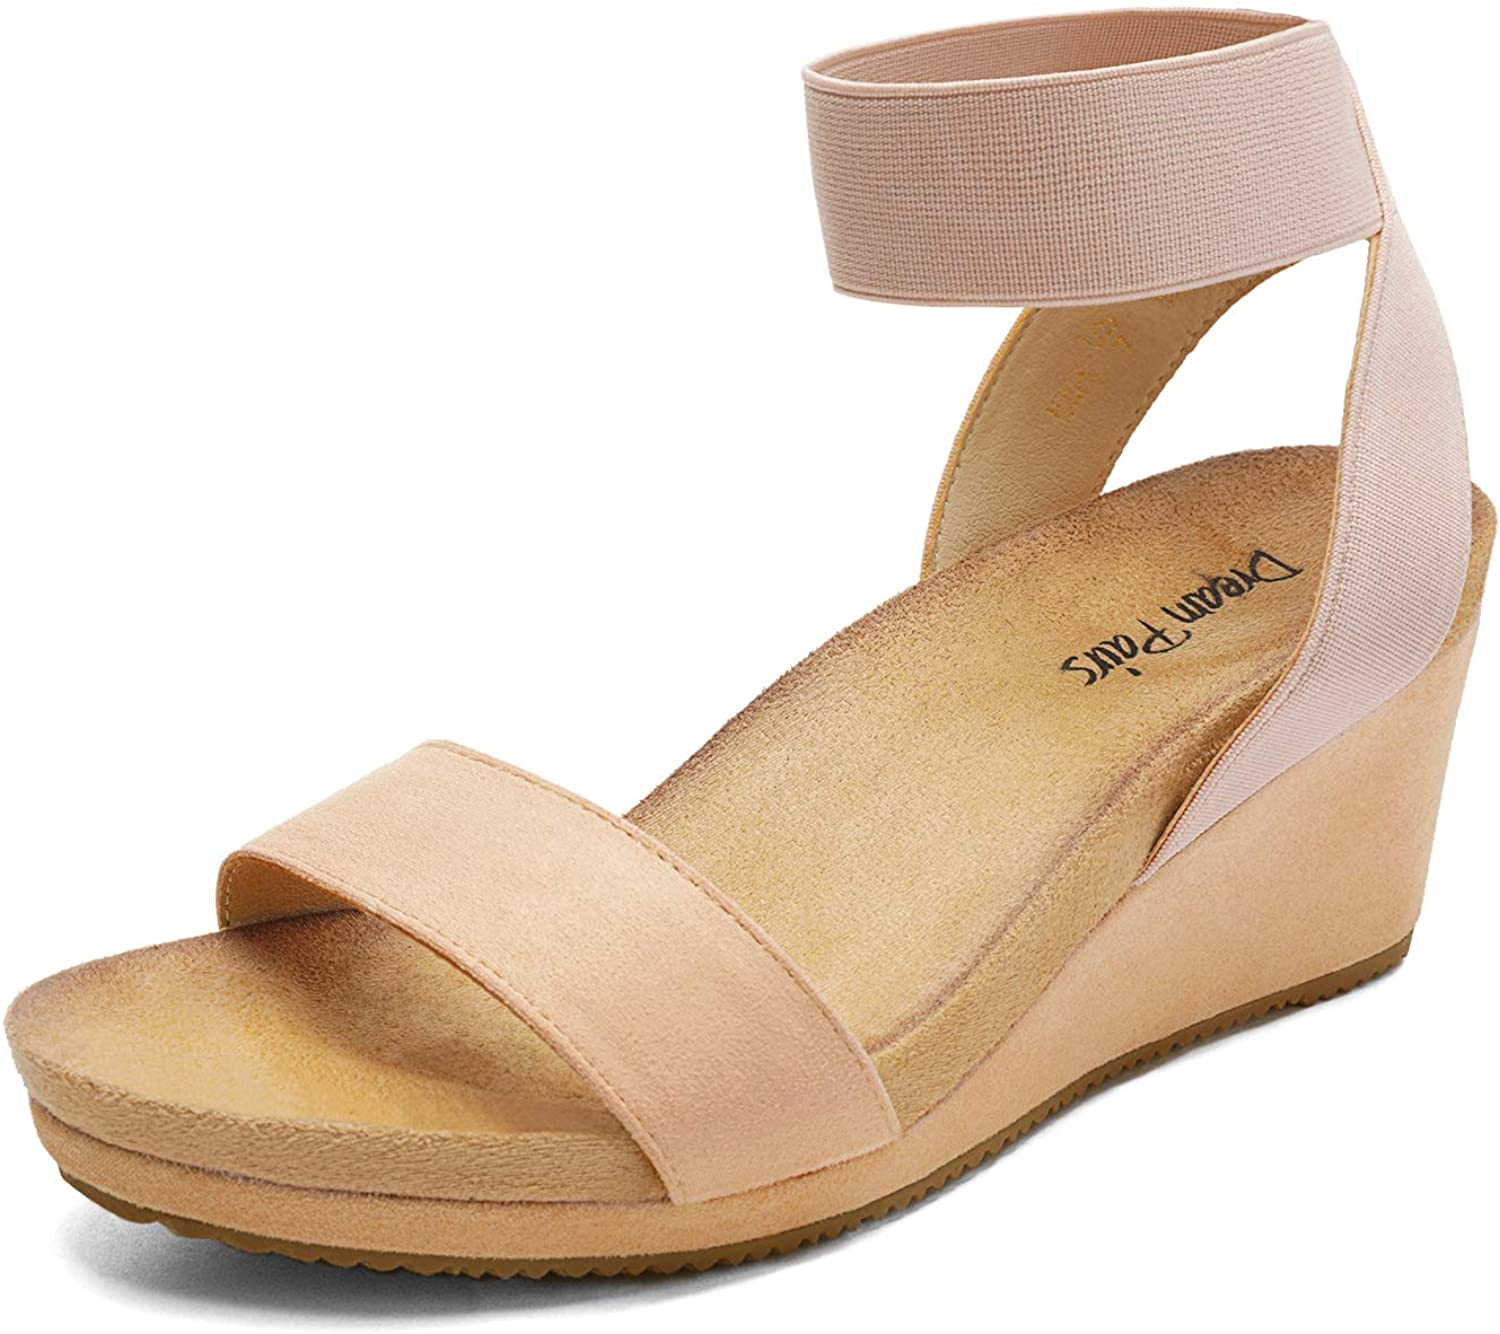 DREAM New arrival PAIRS Women's Elastica Ankle Toe 35% OFF Strap Wedge Platform Open